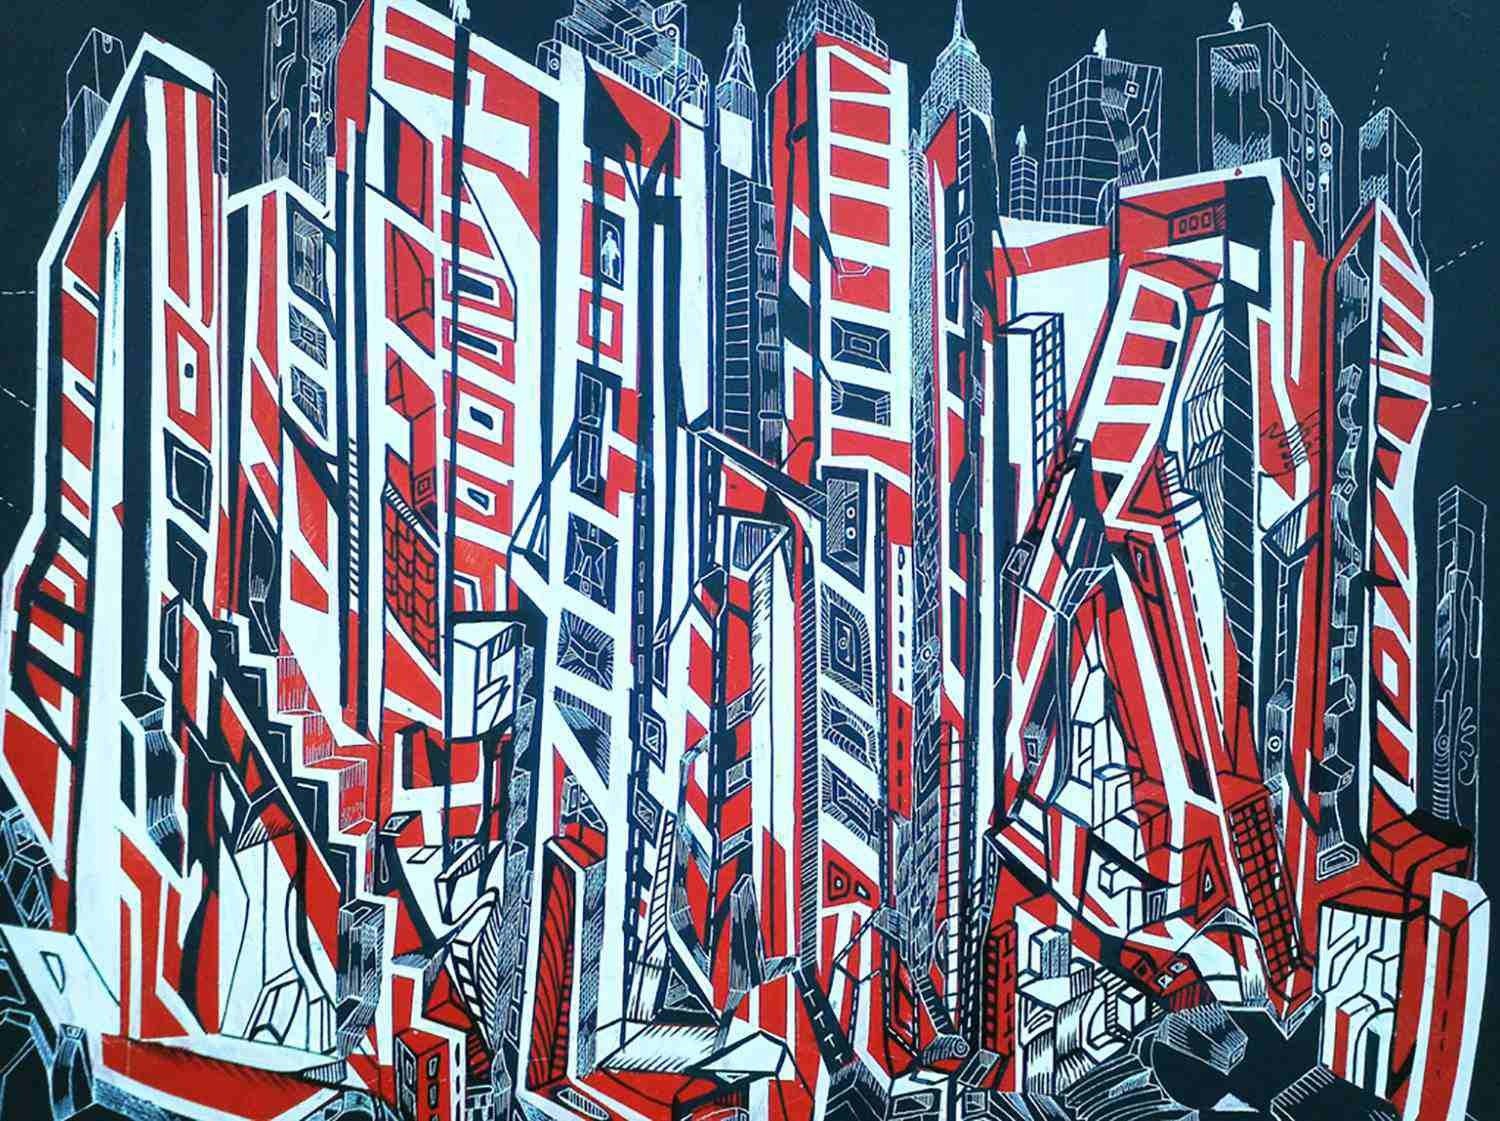 Mr. City is a black and red painting of city skyline.